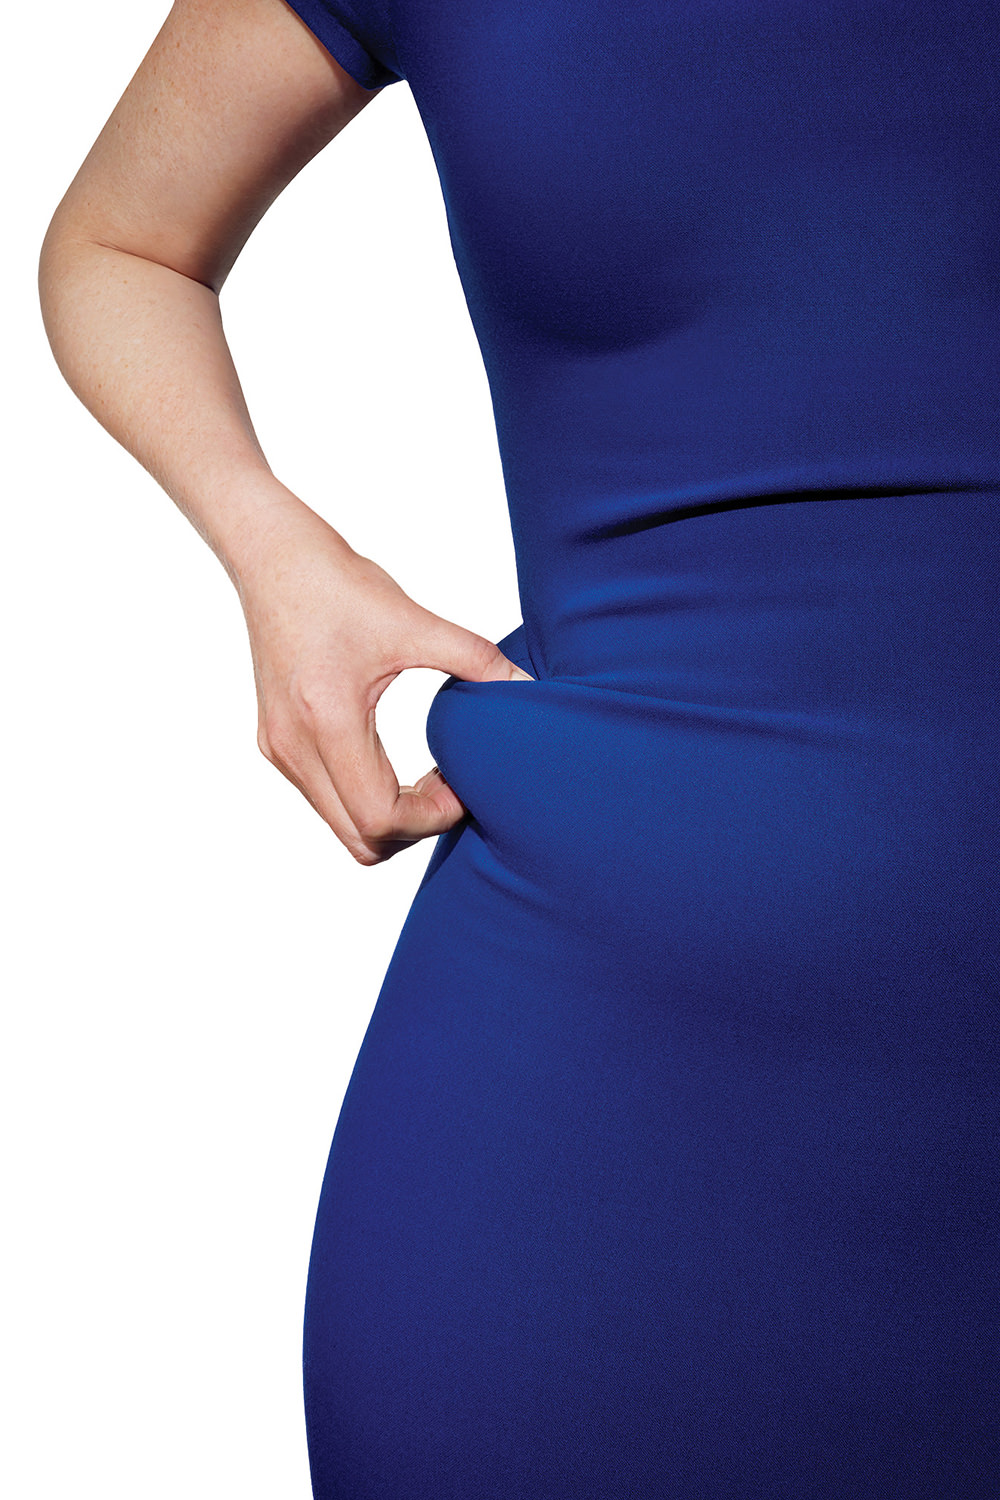 Key Benefits - You can reshape your body! We will develop a customized CoolSculpting treatment plan that addresses your problem areas. Additional sessions may further enhance your results. Your individualized treatment plan will be tailored to your body, your goals, and your budget. Financing options available.